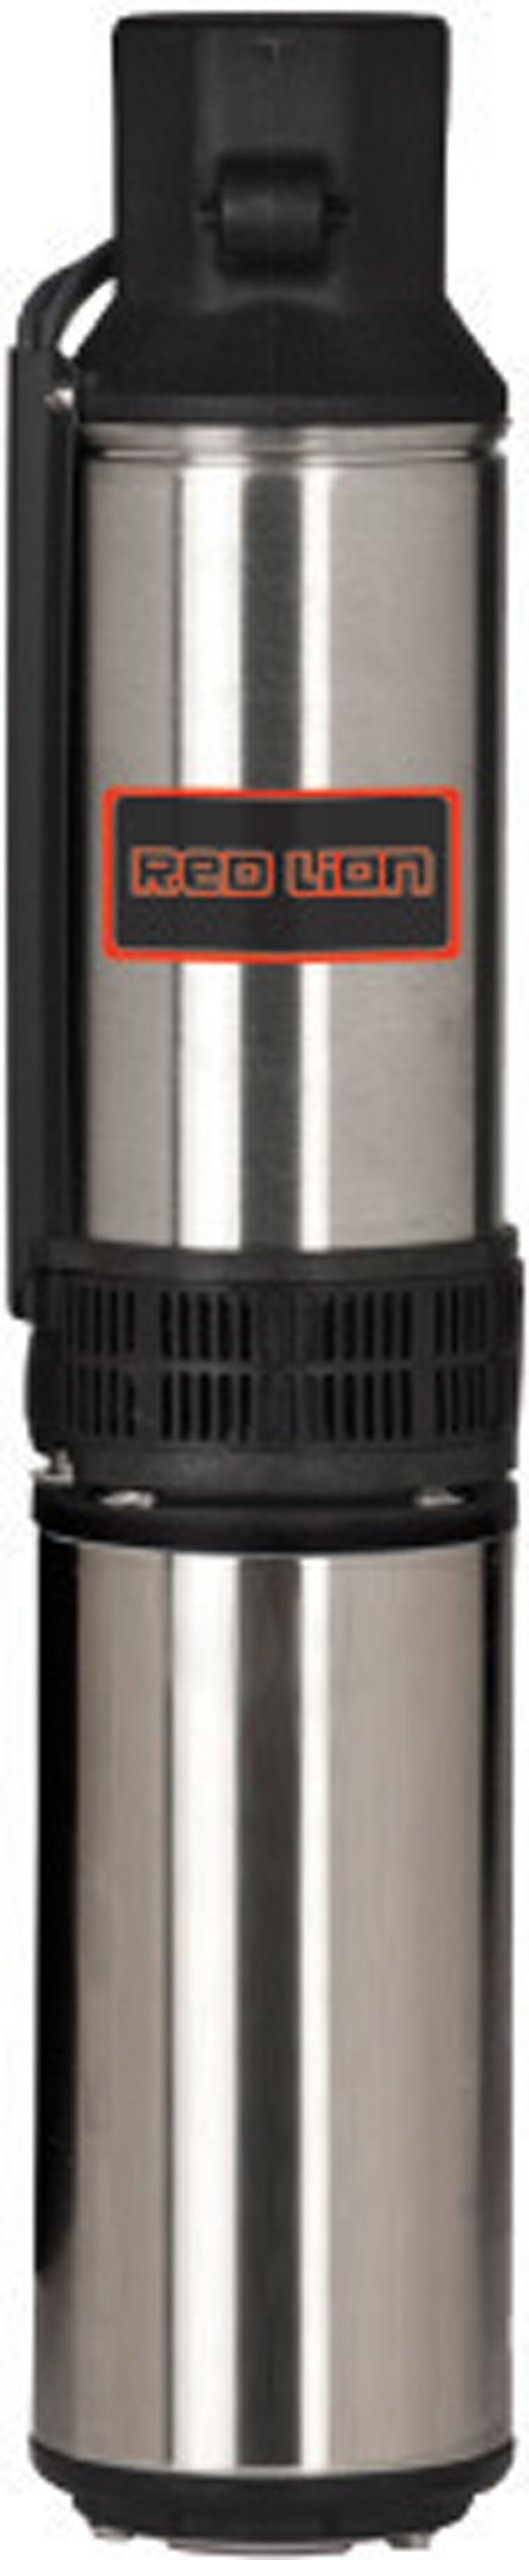 Red Lion RL22G10-3W2V Submersible Deep Well Pump with Control Box, 1-HP 22-GPM 3-Wire 230-Volt, Stainless Steel